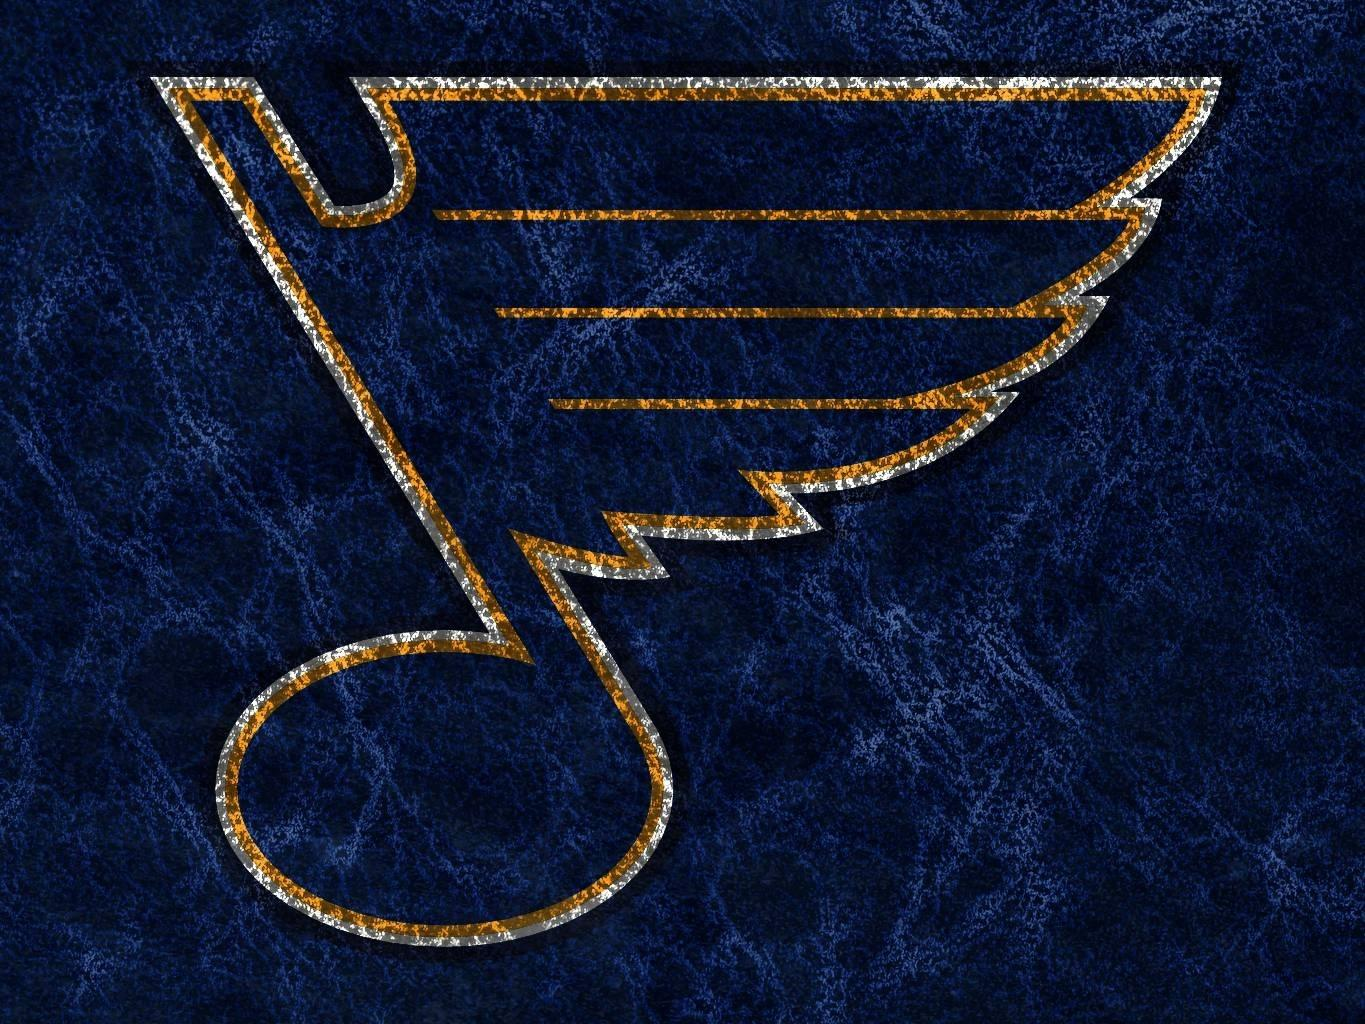 10 Top St Louis Blues Wallpapers Cell Phone FULL HD 1920×1080 For PC